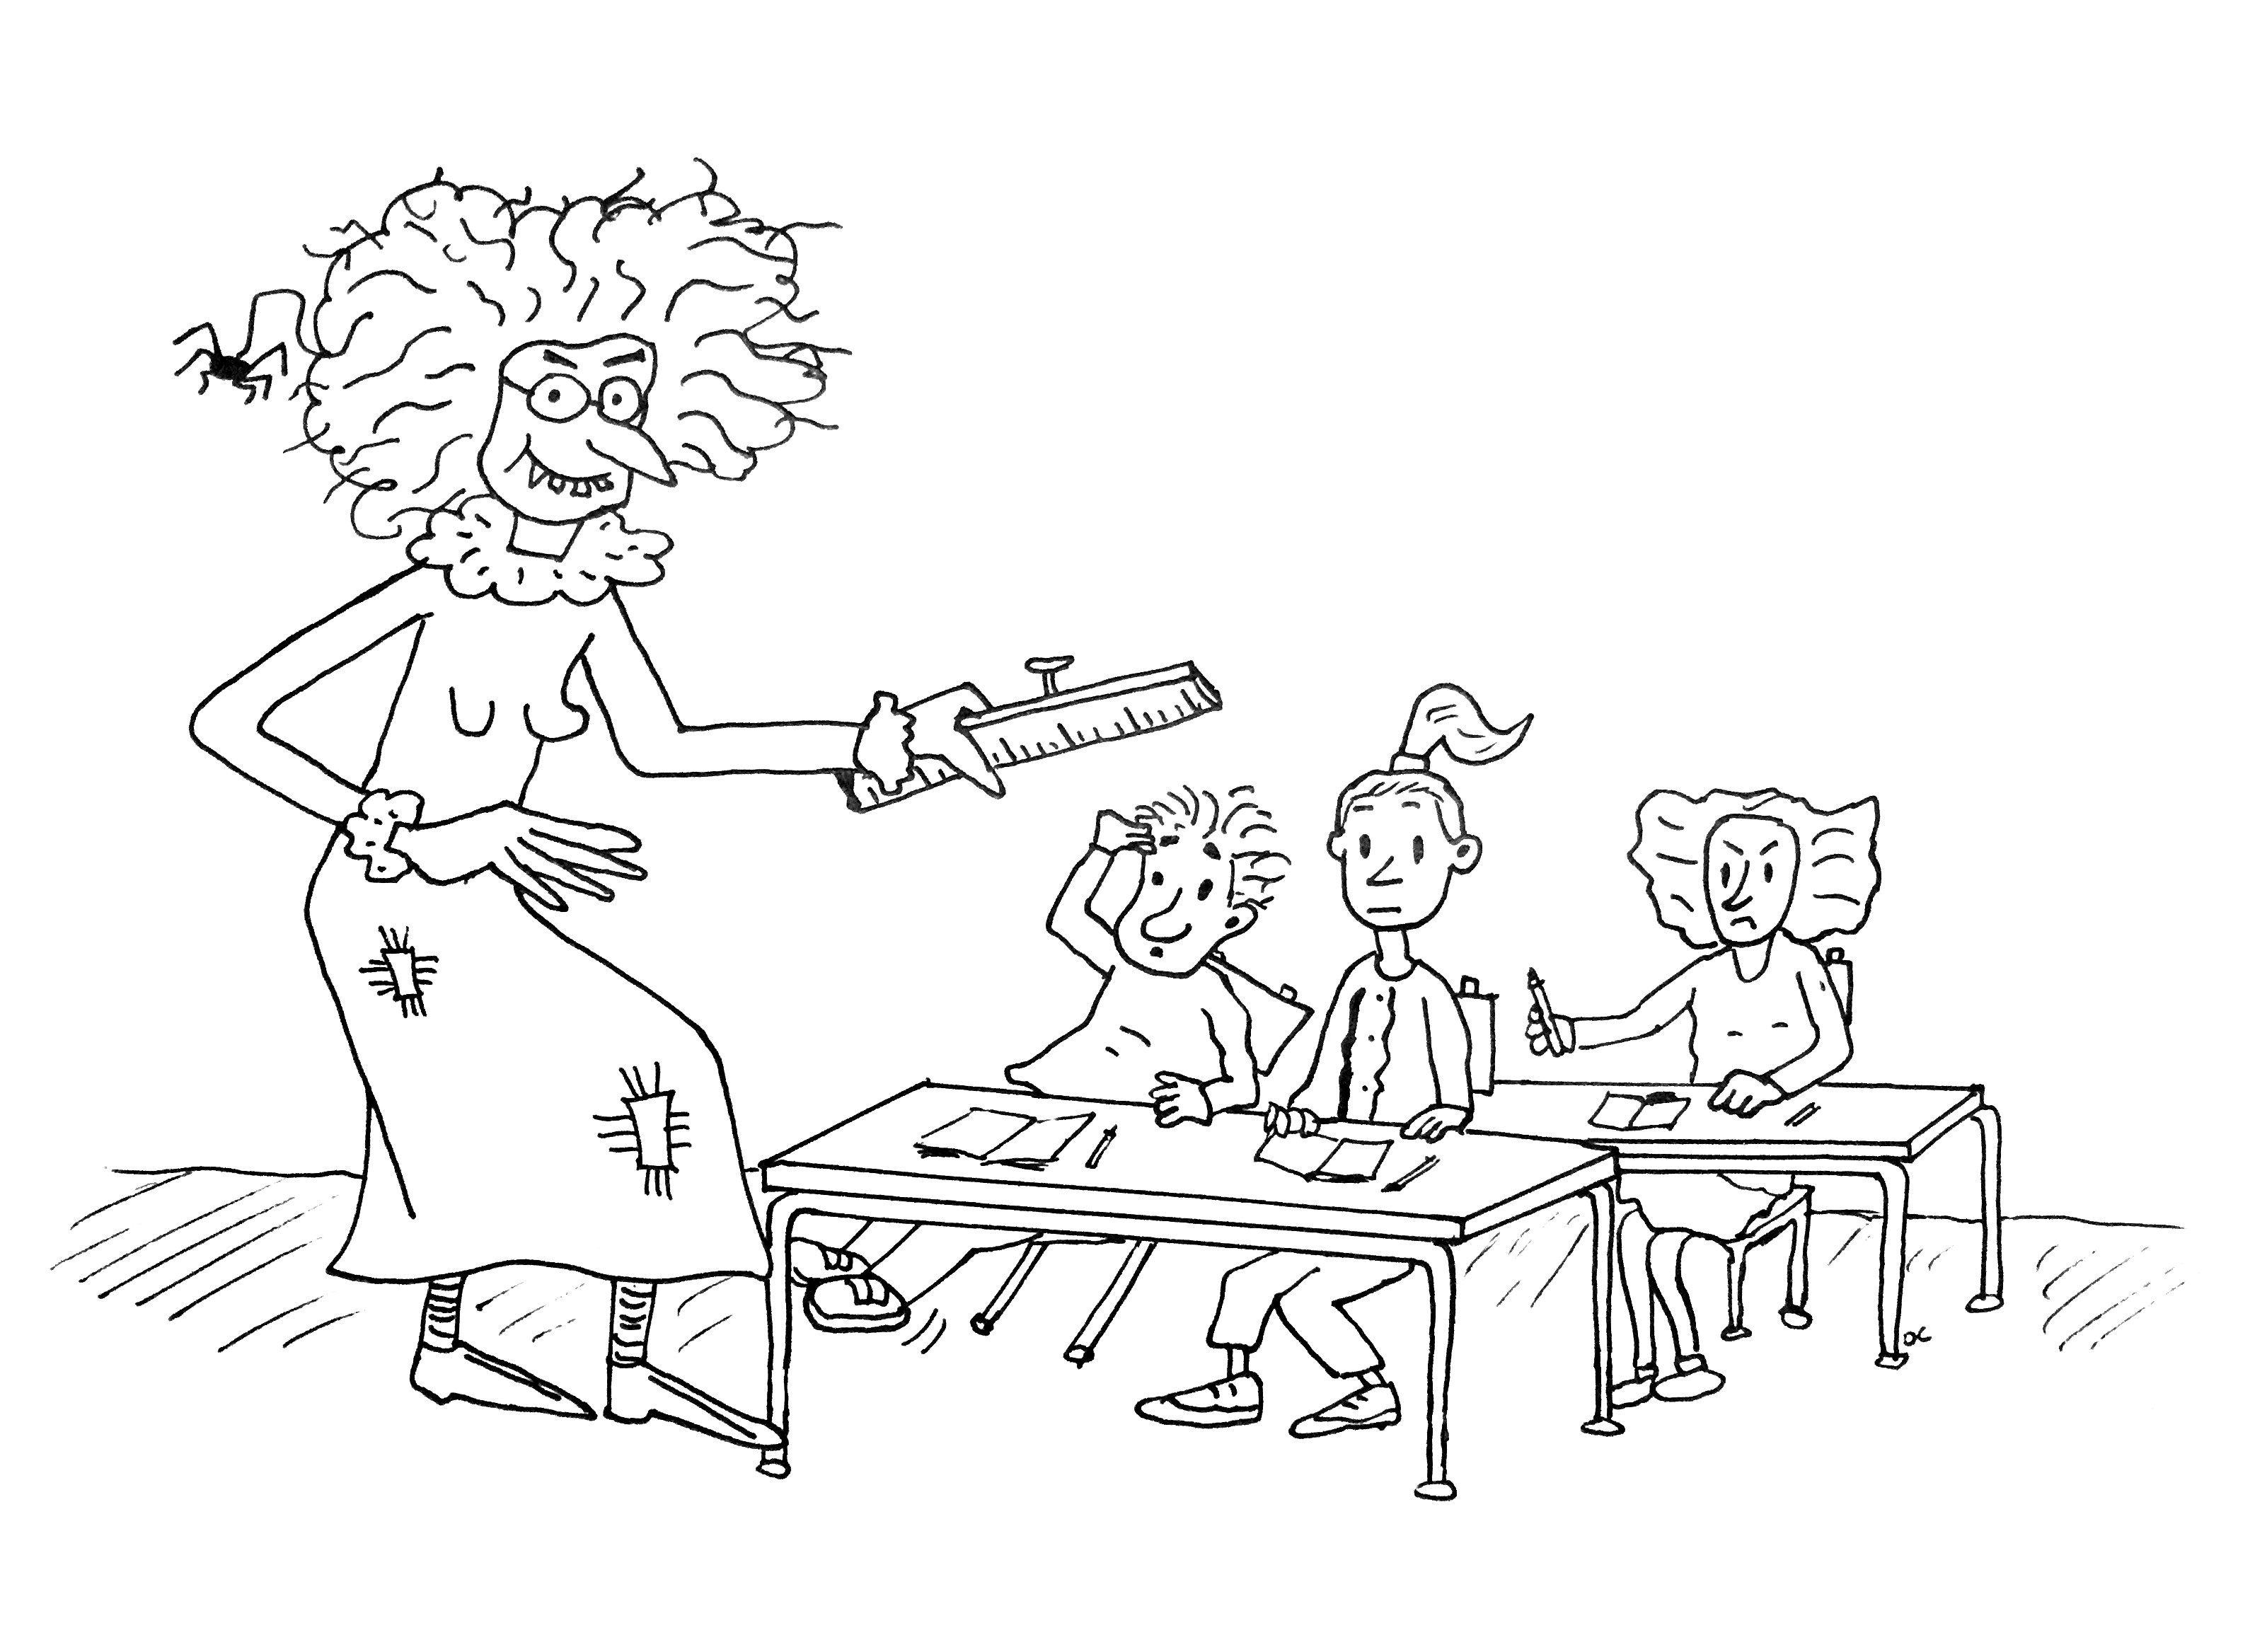 School Coloring Pages Back To School To Download Back To School Kids Coloring Pages